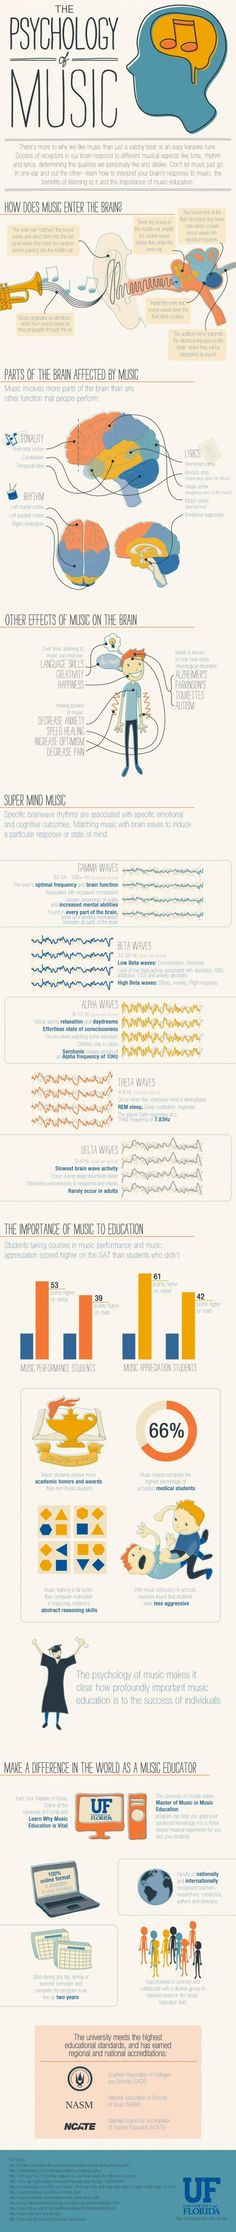 The Psychology of Music -- the importance of marketing lessons back to the parents of your students!  Great reminder.